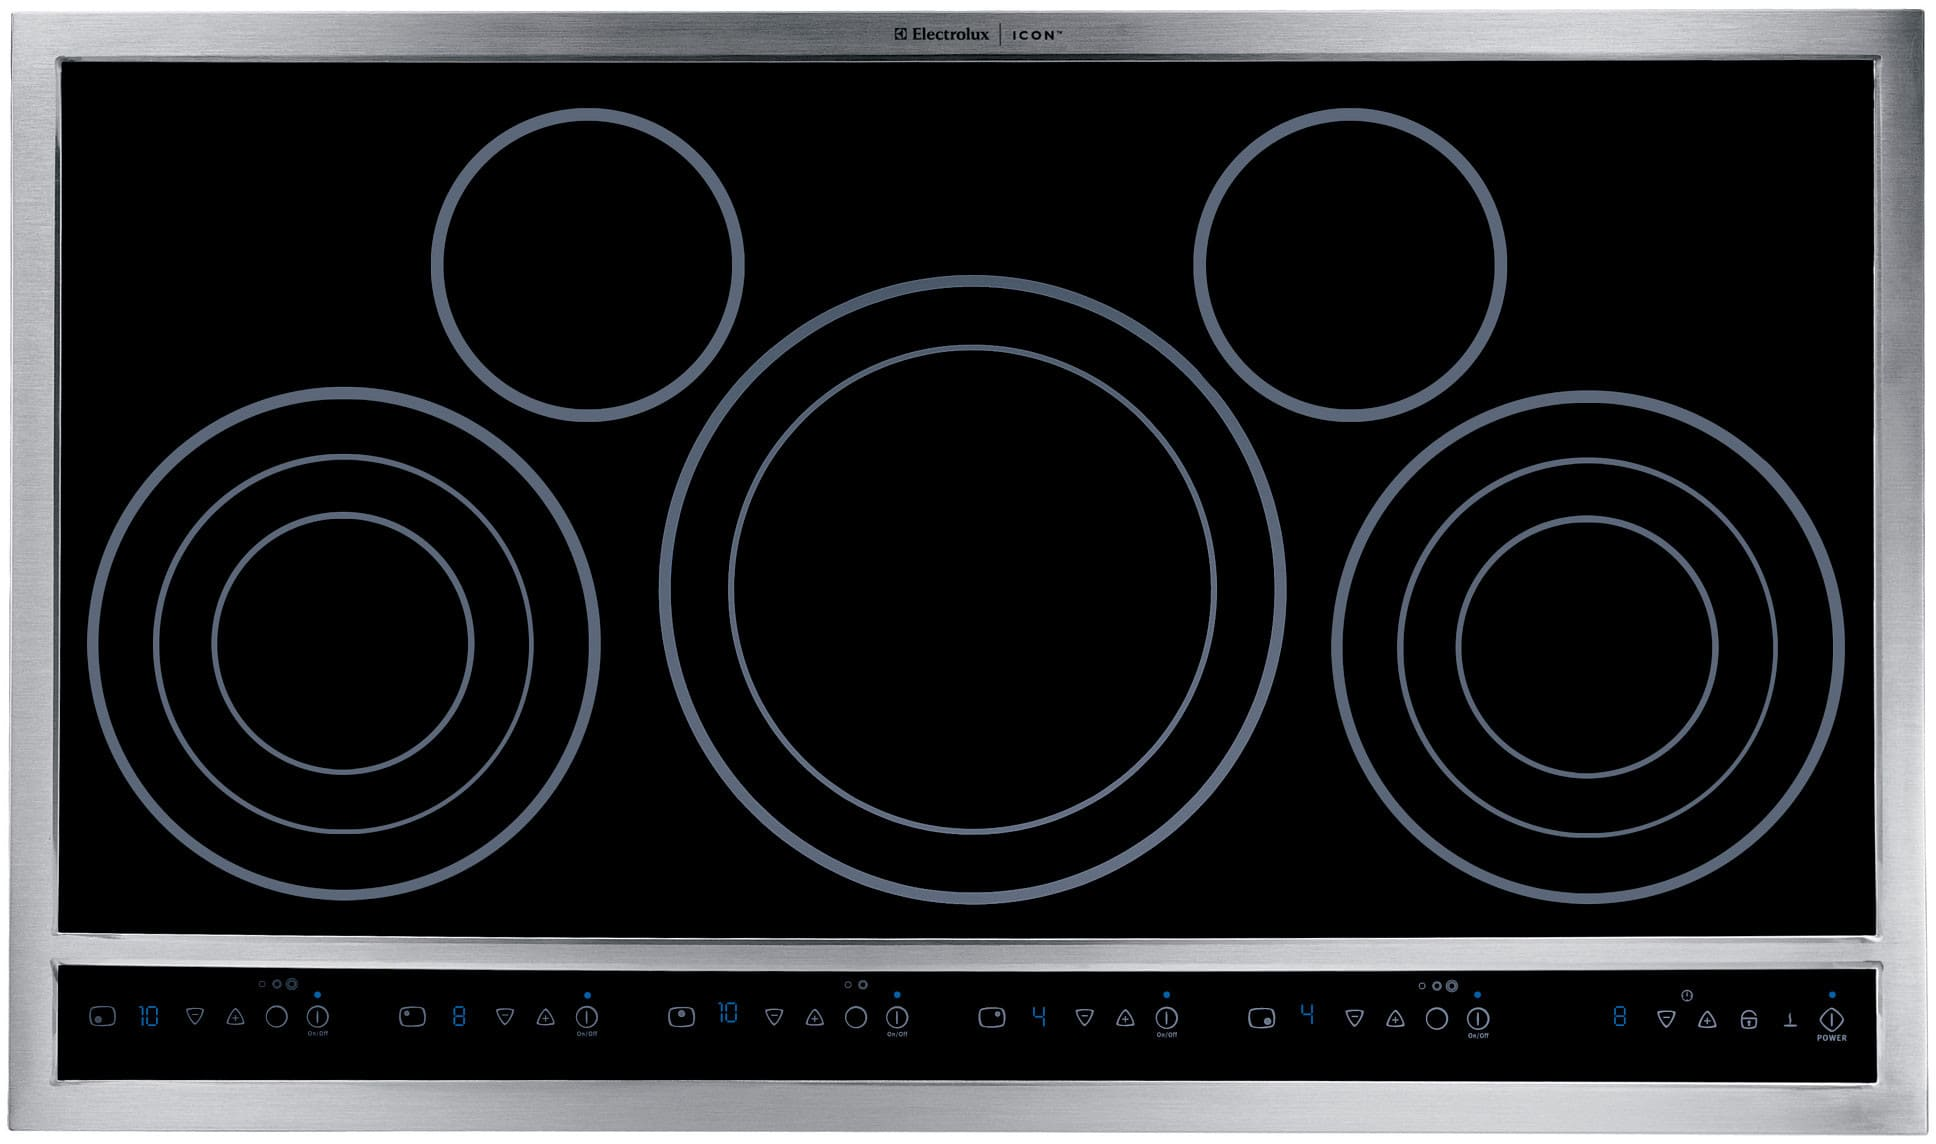 electrolux e36ec70fss 36 inch dropin electric cooktop with 5 flexible radiant elements ceramic glass surface customset touch controls keep warm setting - Electric Cooktop